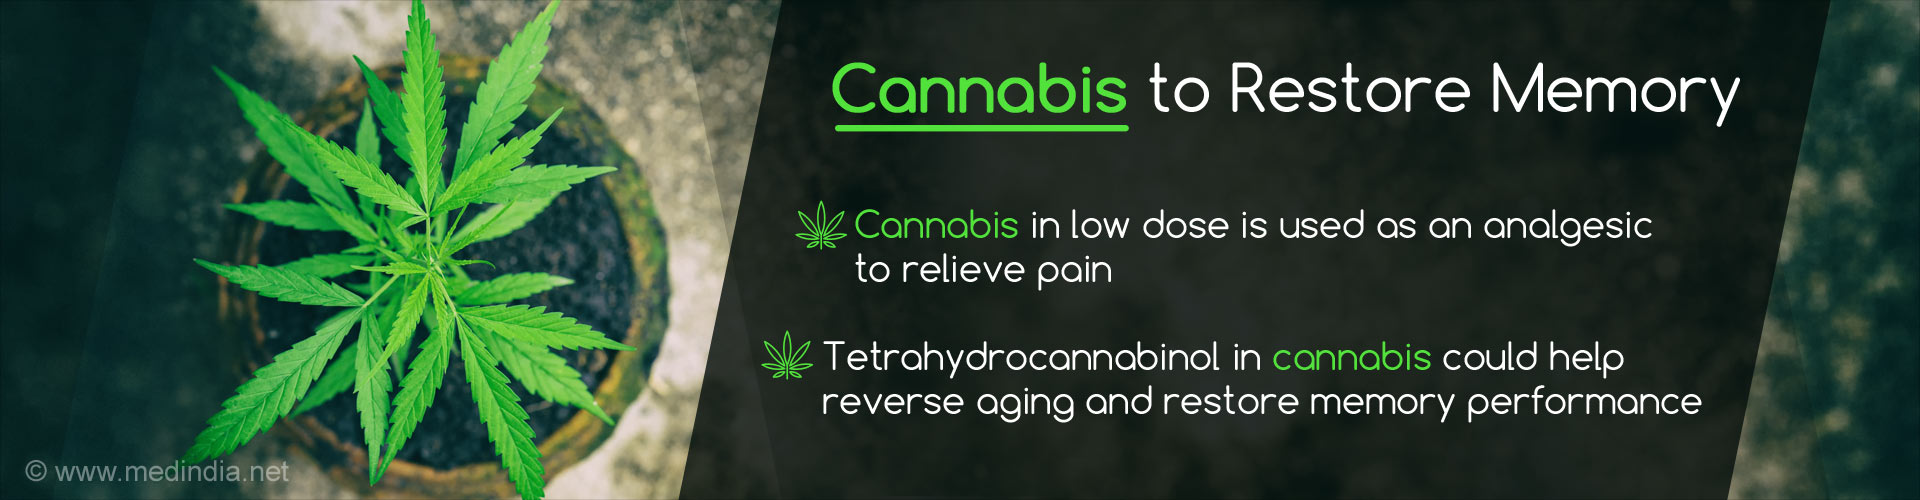 Cannabis to restore memory - Cannabis in low dose is used as an analgesic to relieve pain - Tetrahydrocannabinol in cannabis could help reverse aging and restore memory performance